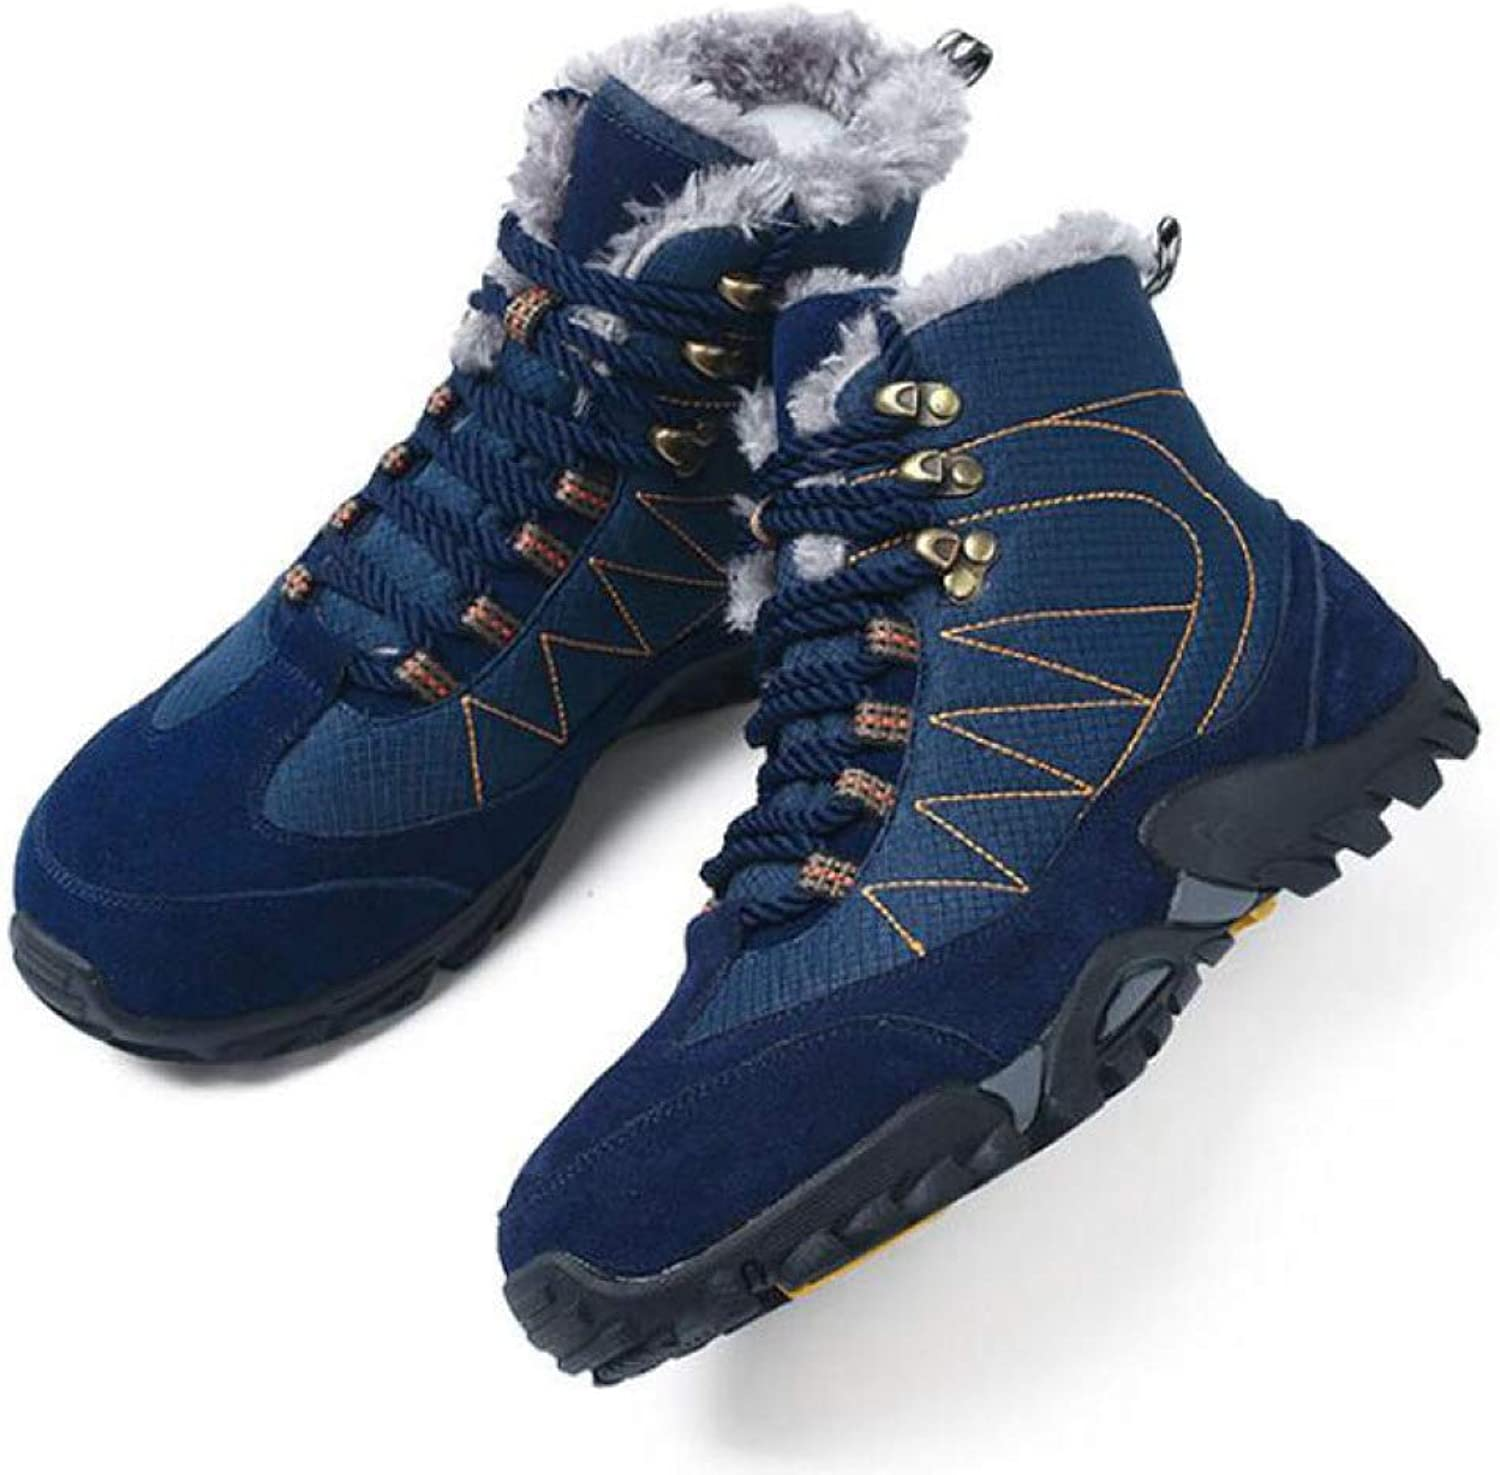 Winter Men's Snow Boots Suede Casual Non Slip shoes Fur Keep Warm Hiking Ankle Booties Large Size:5-12.5